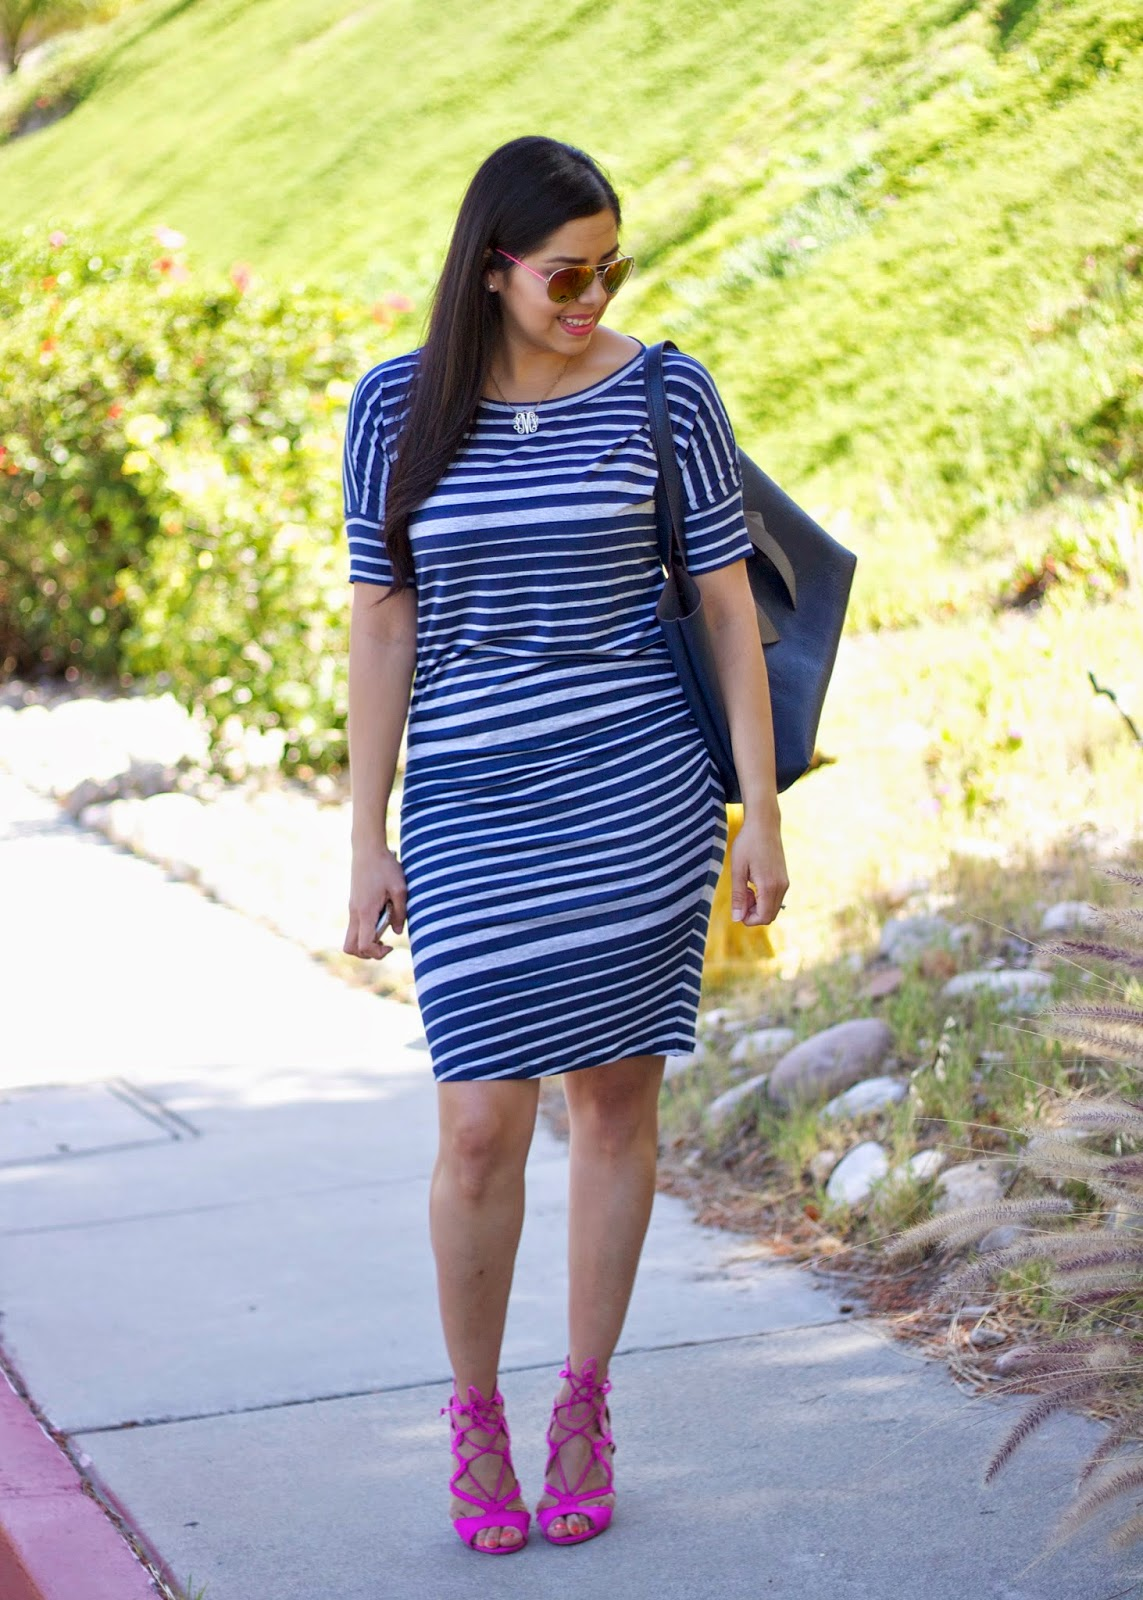 how to wear navy and pink, navy pink and blue outfit, pops of pink in an outfit, navy striped dress